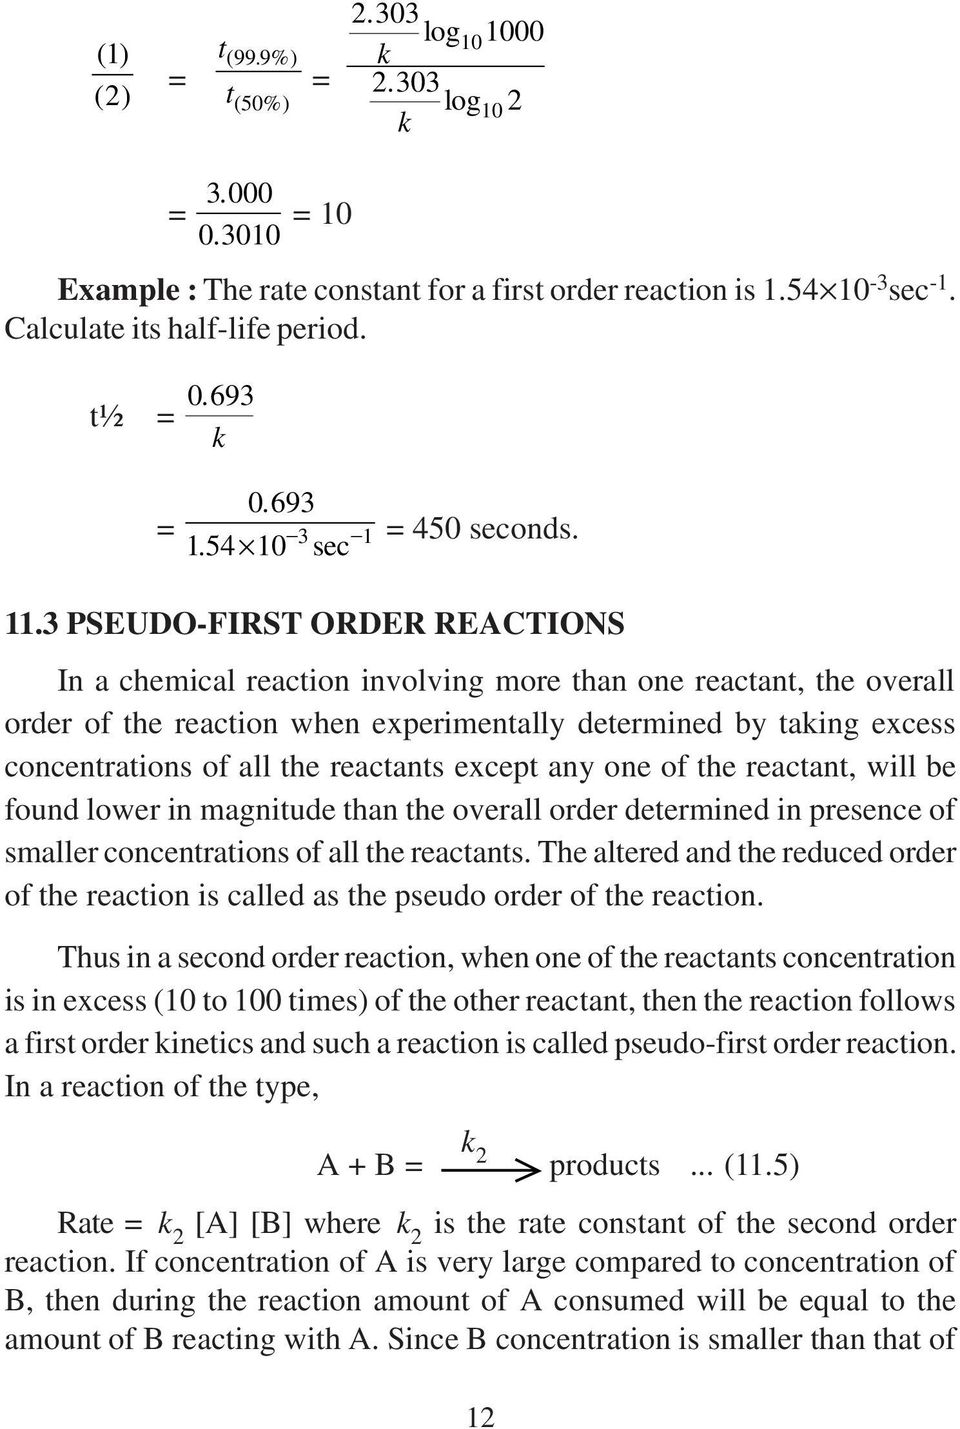 3 PSEUD-FIRST RDER REACTINS In a chemical reaction involving more than one reactant, the overall order of the reaction when experimentally determined by taking excess concentrations of all the